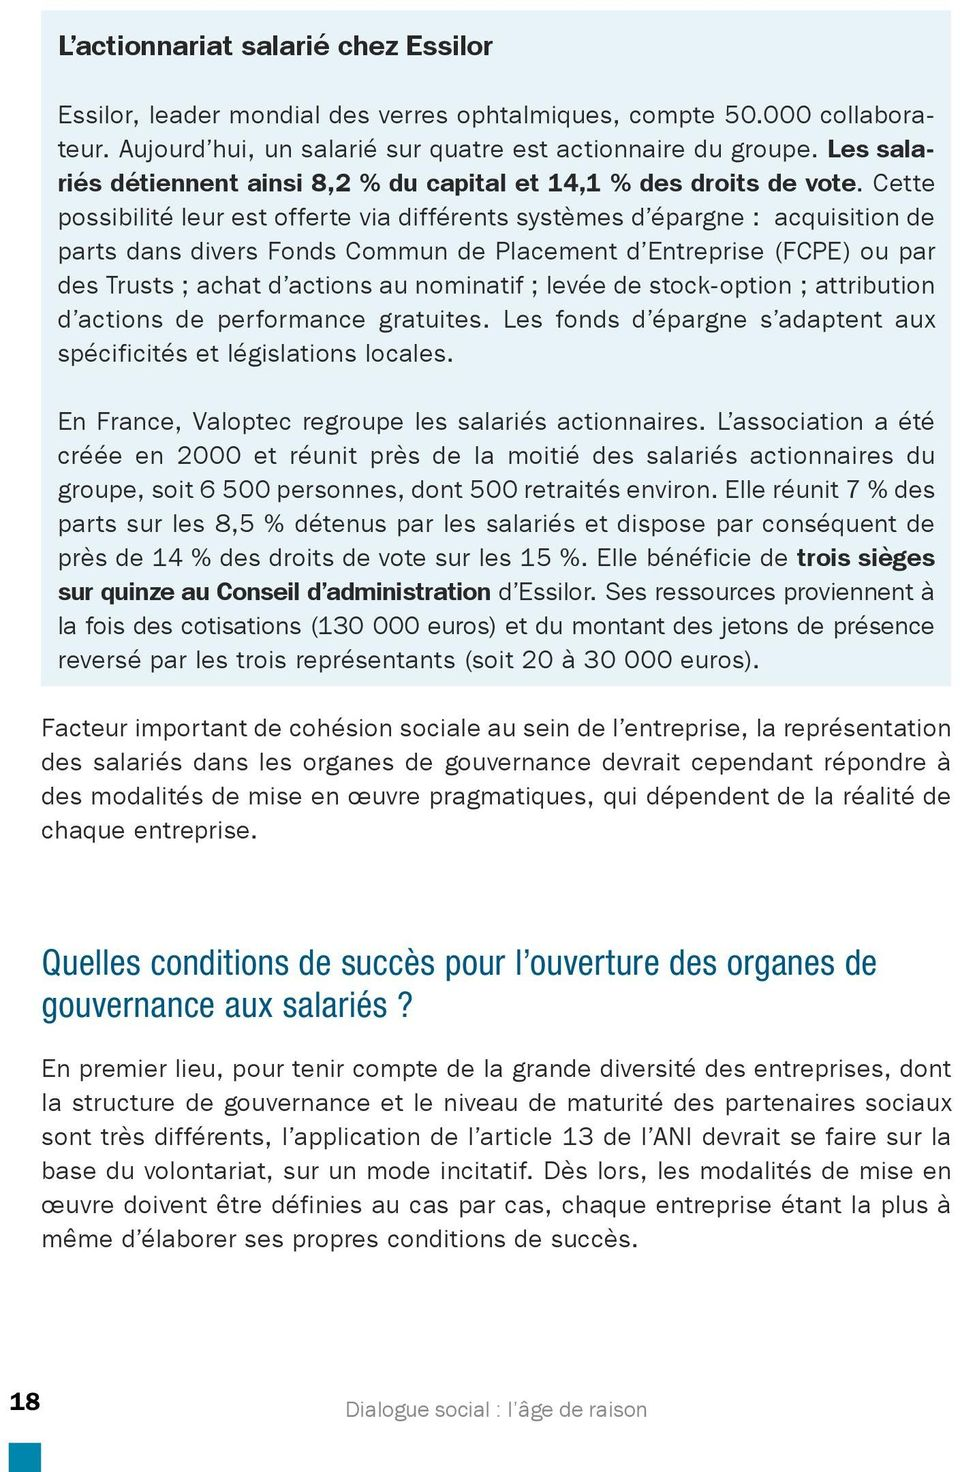 Cette possibilité leur est offerte via différents systèmes d épargne : acquisition de parts dans divers Fonds Commun de Placement d Entreprise (FCPE) ou par des Trusts ; achat d actions au nominatif